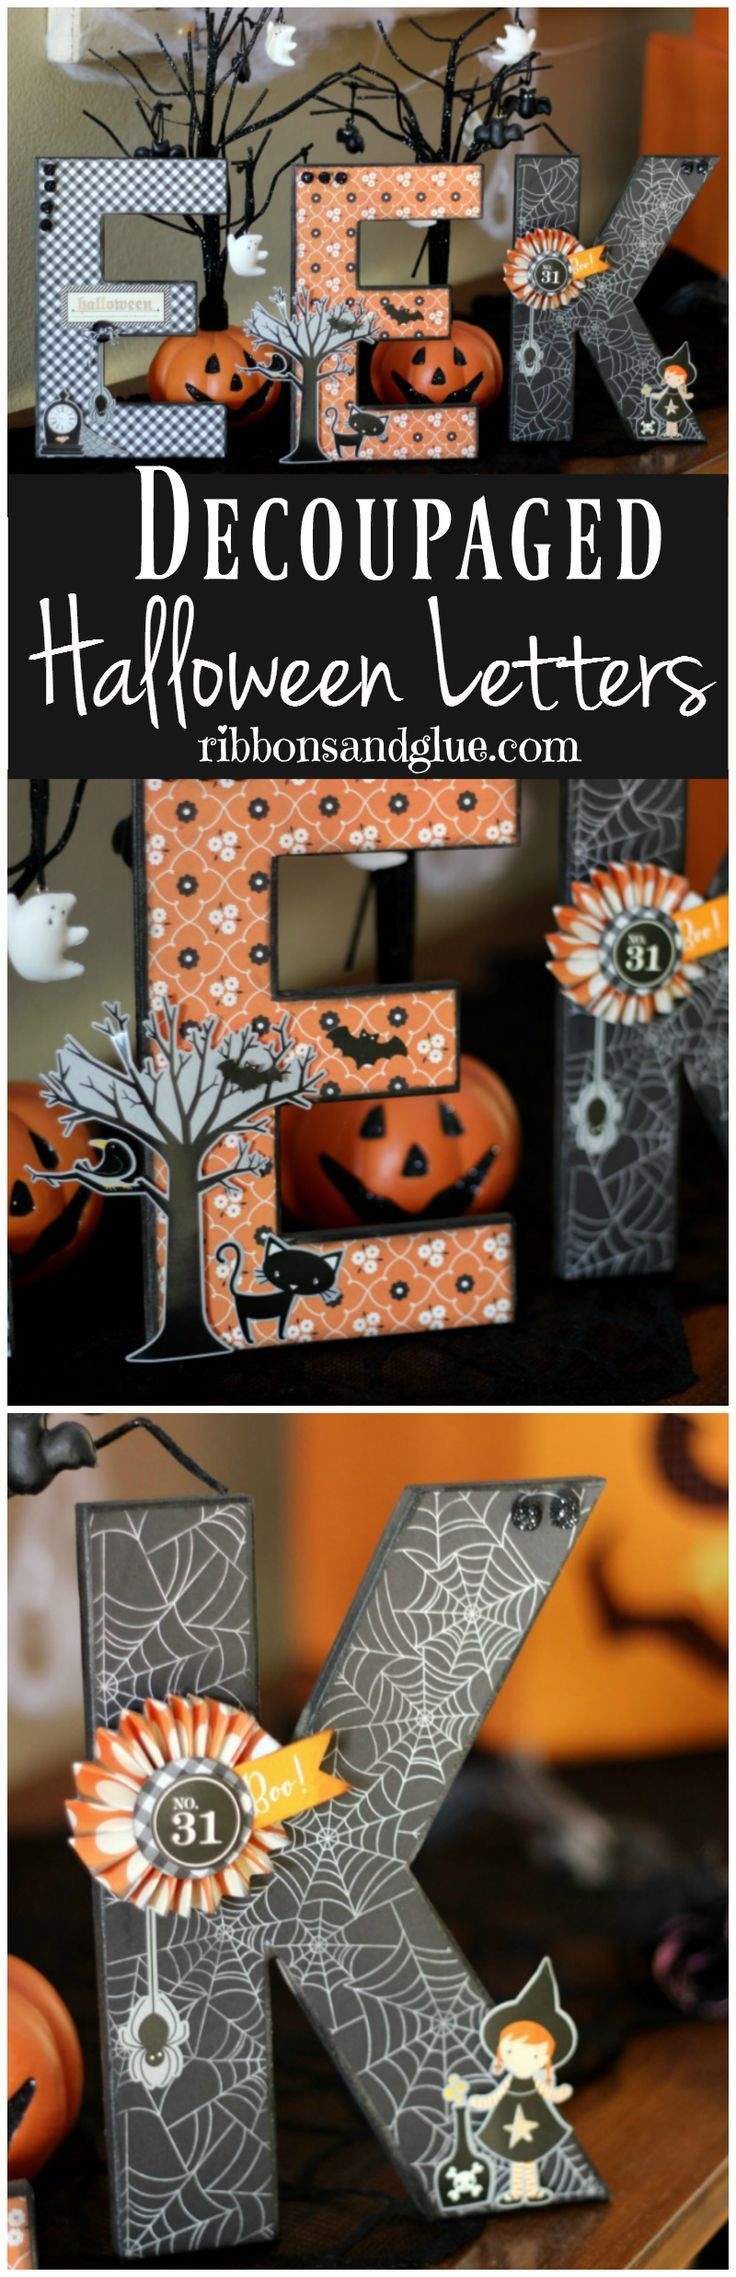 Create Decoupaged Halloween Letters by using mod podge to adhere Halloween…